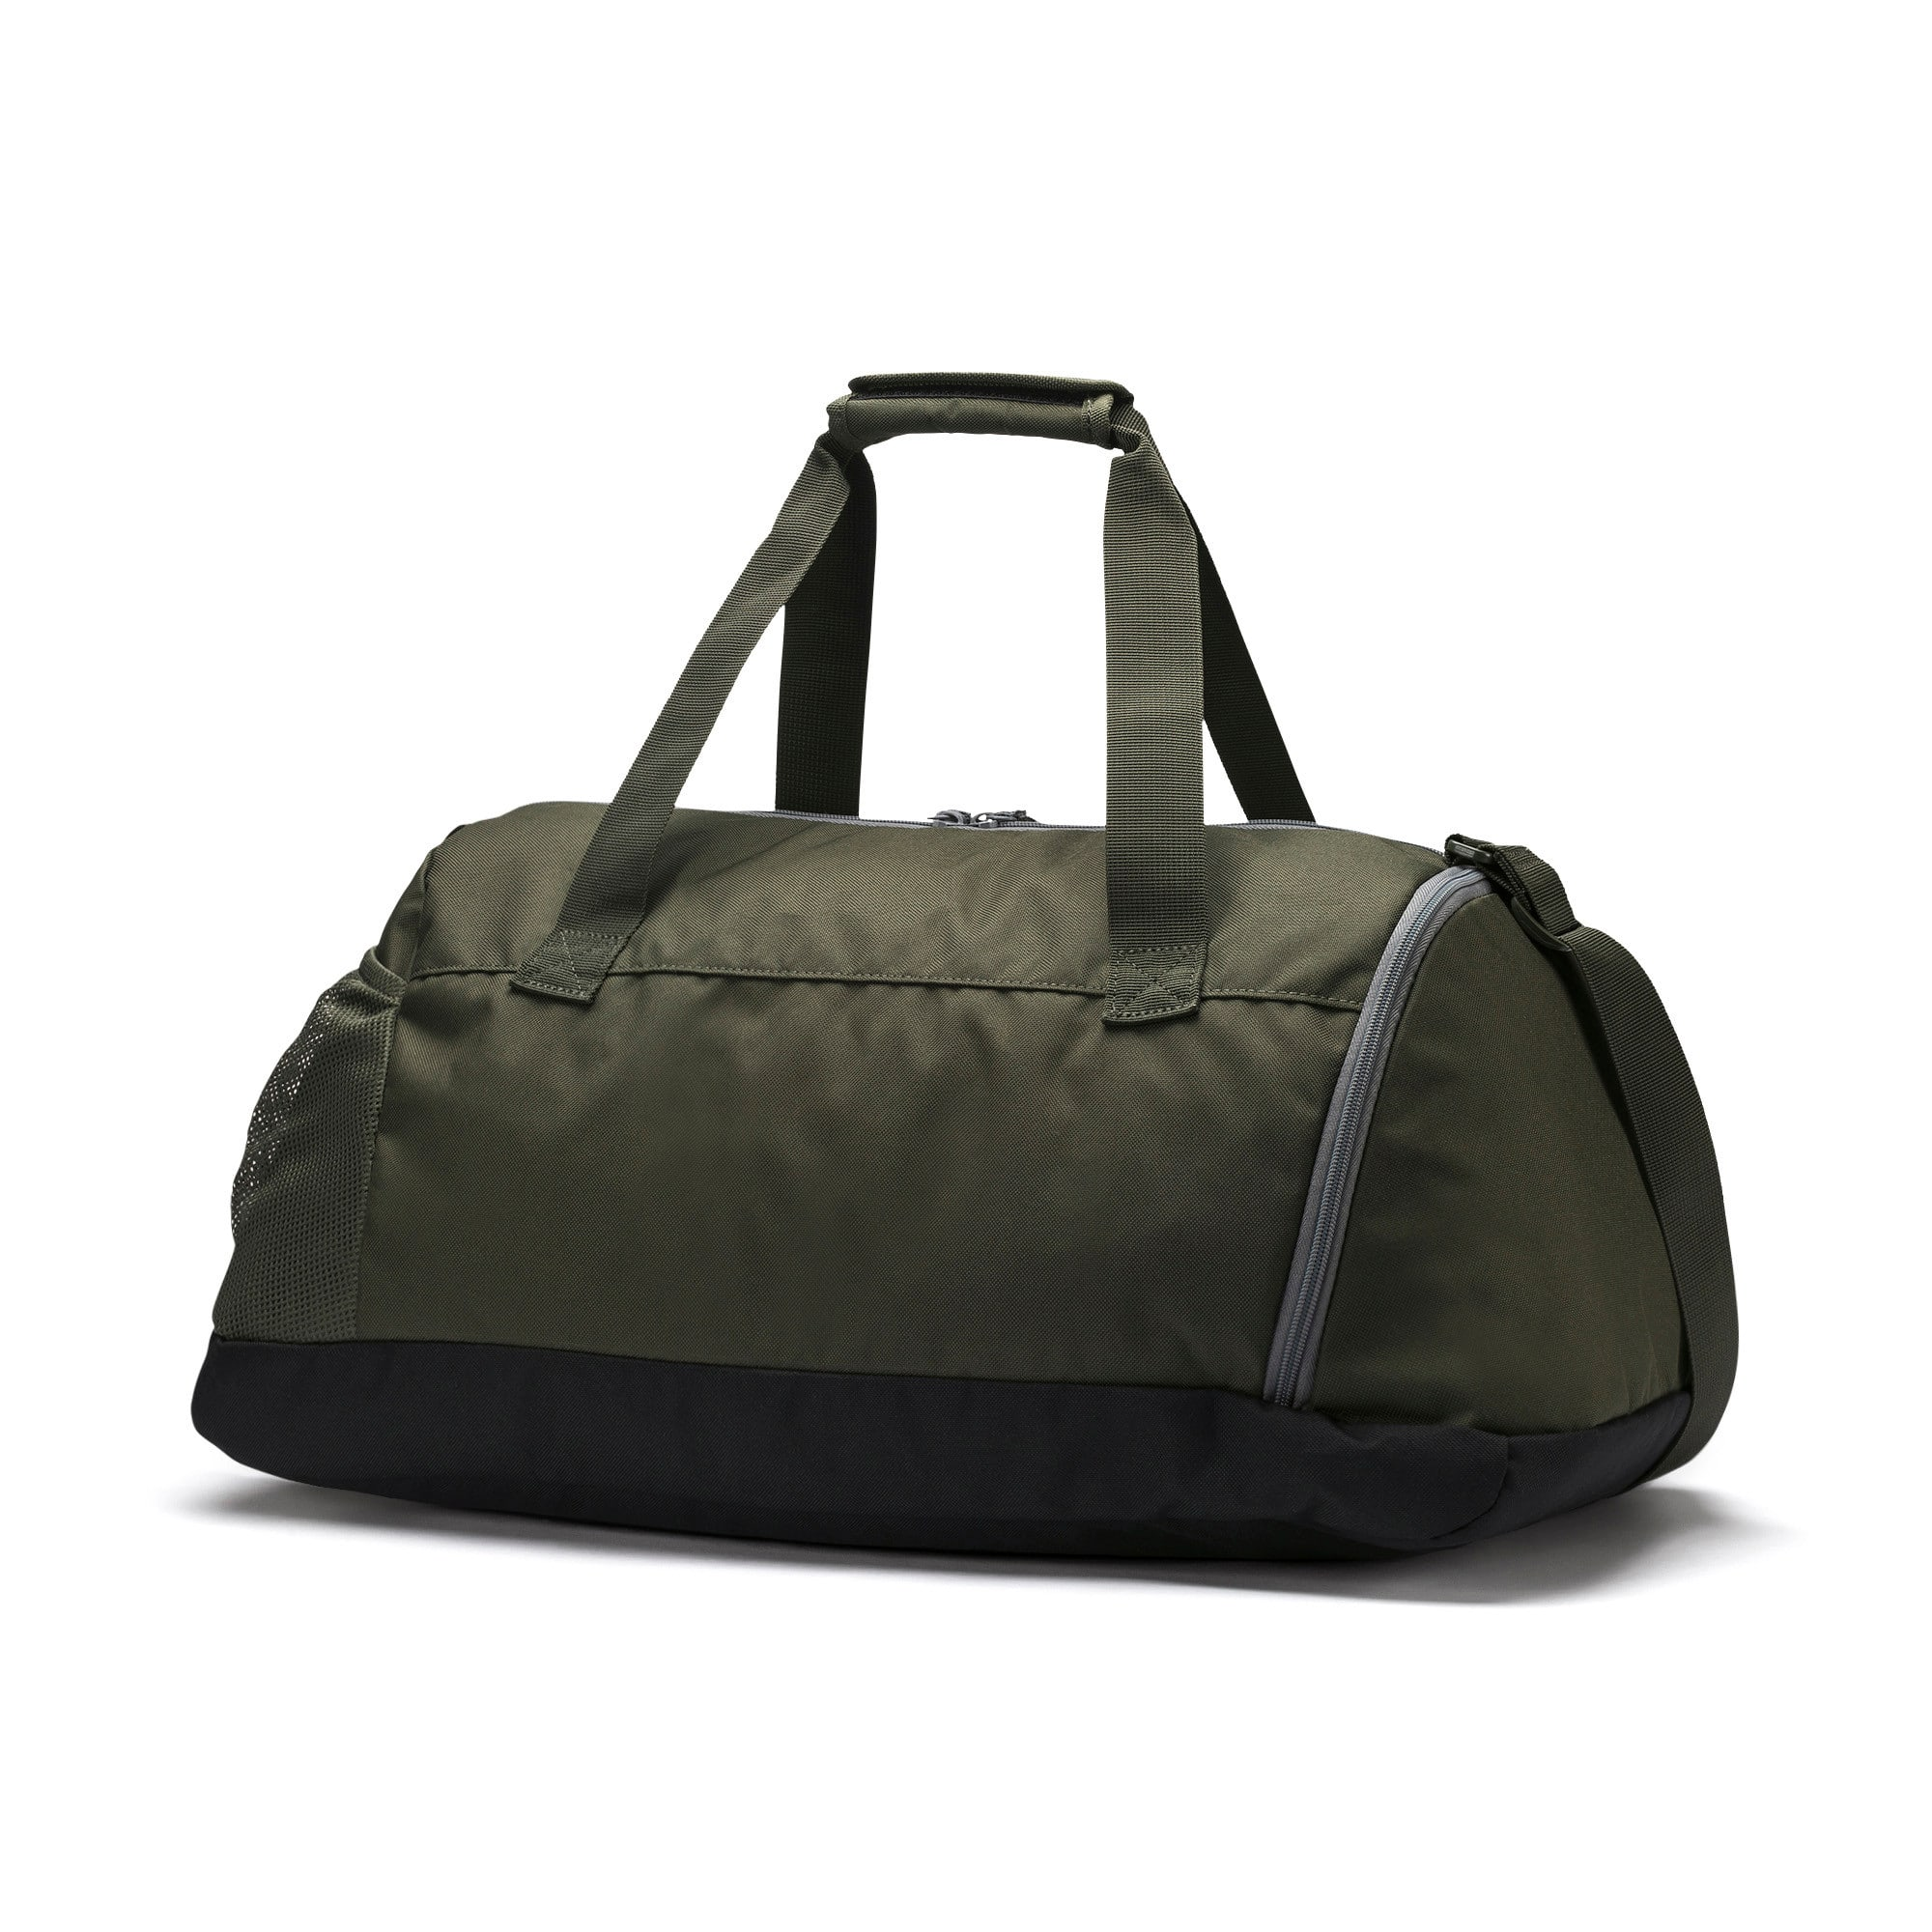 Thumbnail 2 of PUMA Vibe Gym Bag, Forest Night, medium-IND